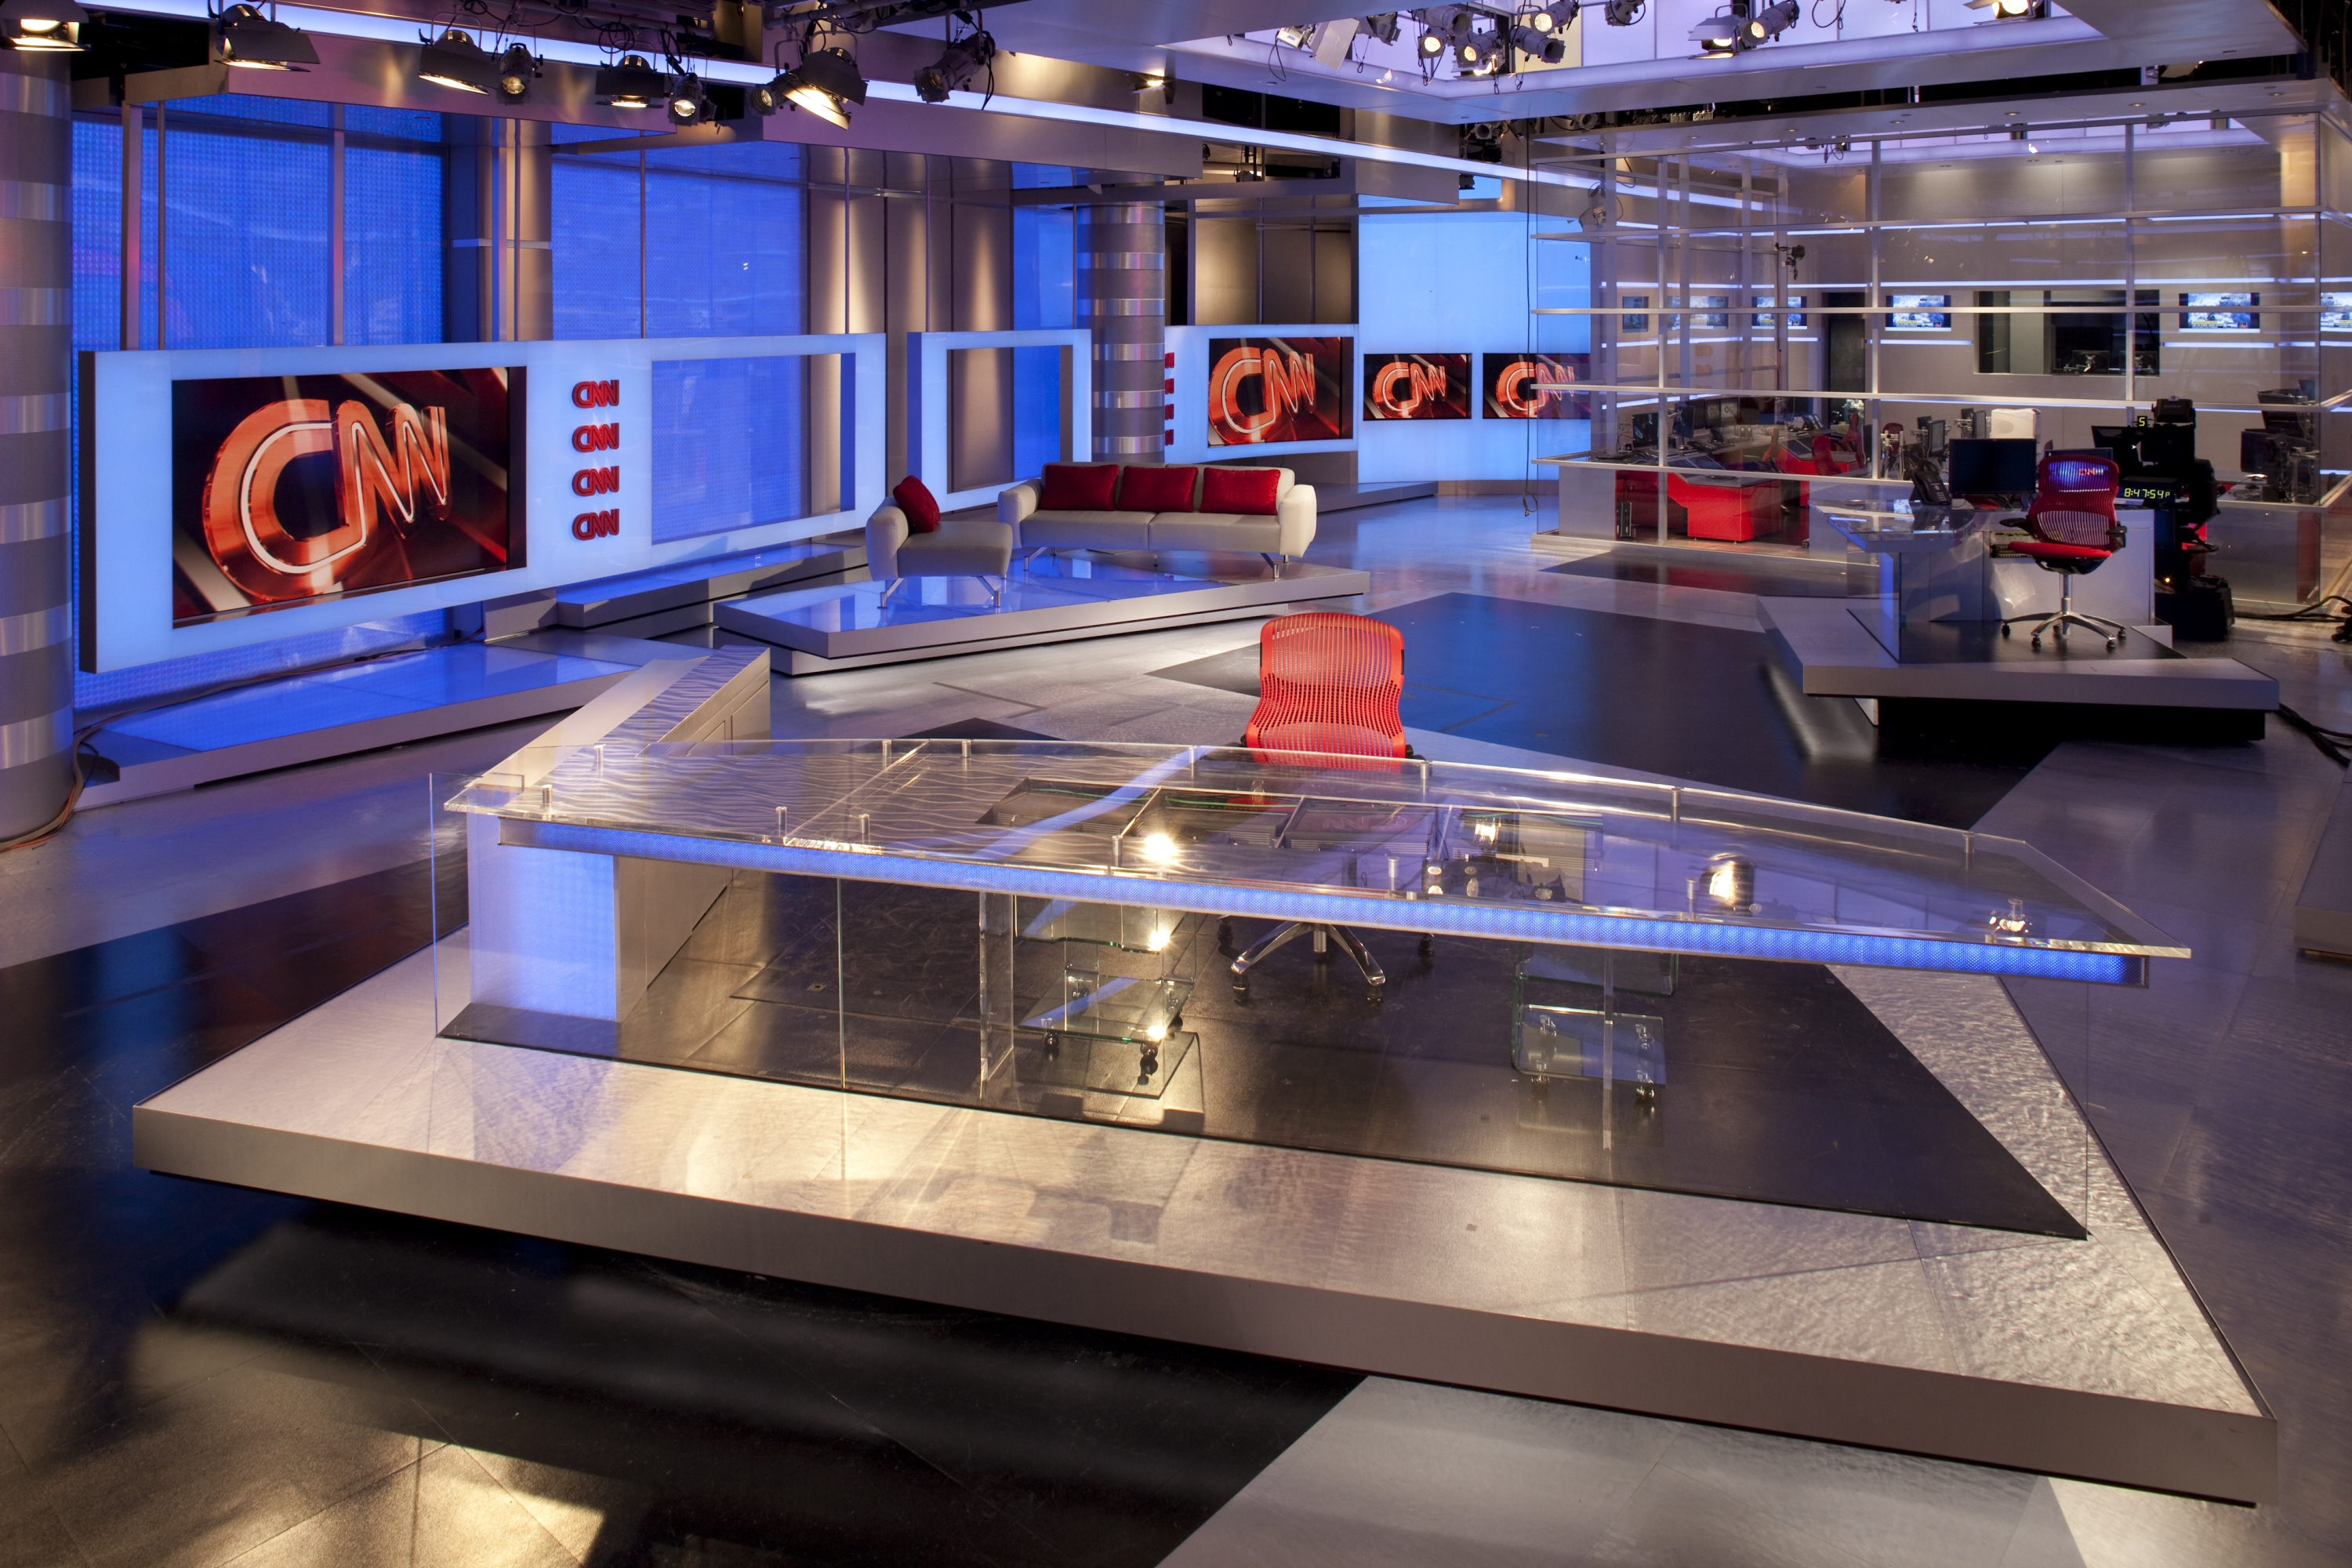 Panoramic view of the CNN newsroom, including the anchor stations.